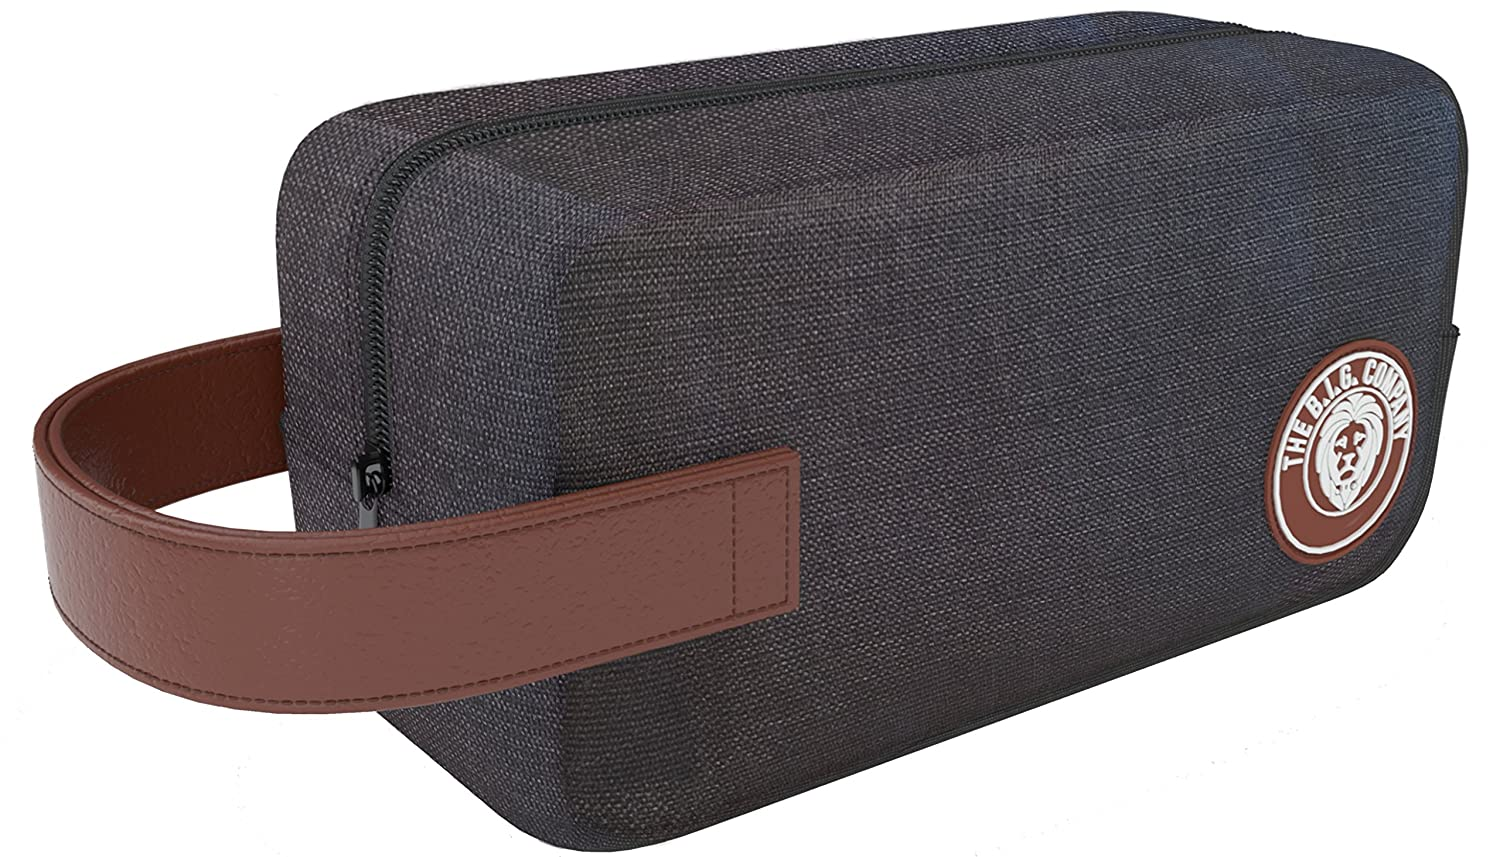 Amazon.com  Men s Bathroom Travel Toiletry Bag Packing Organizer - Shaving  Dopp Kit - Comes with Bonus Shaving Guide eBook - Grey - The B.I.G.  Company  ... 2c67fb1275956